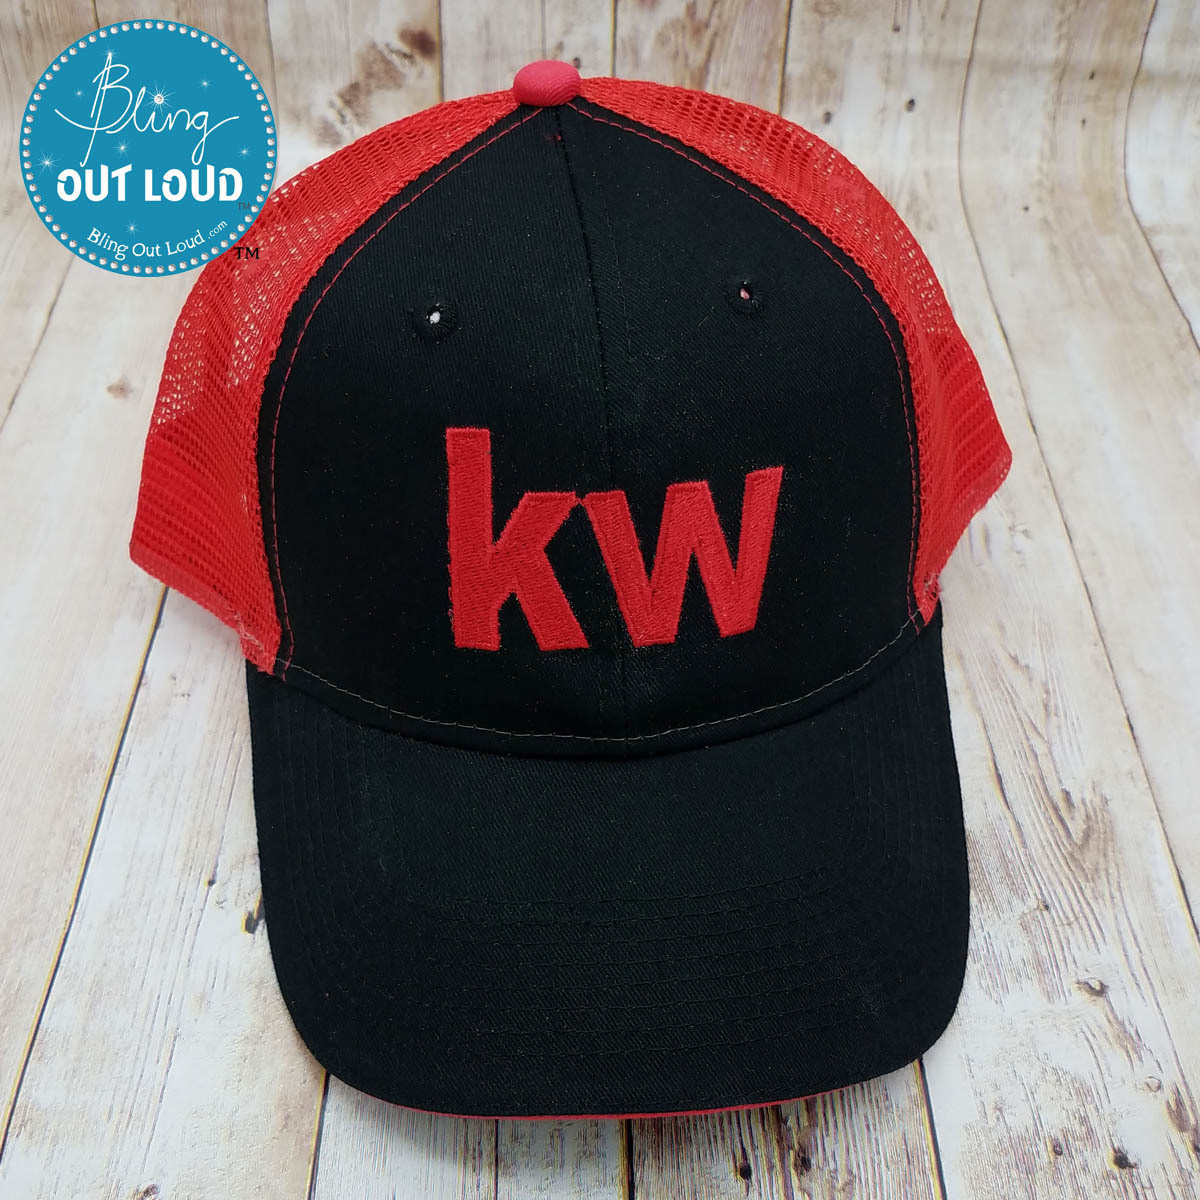 Keller Williams Realty Embroidered Trucker Cap Hat for Realtors